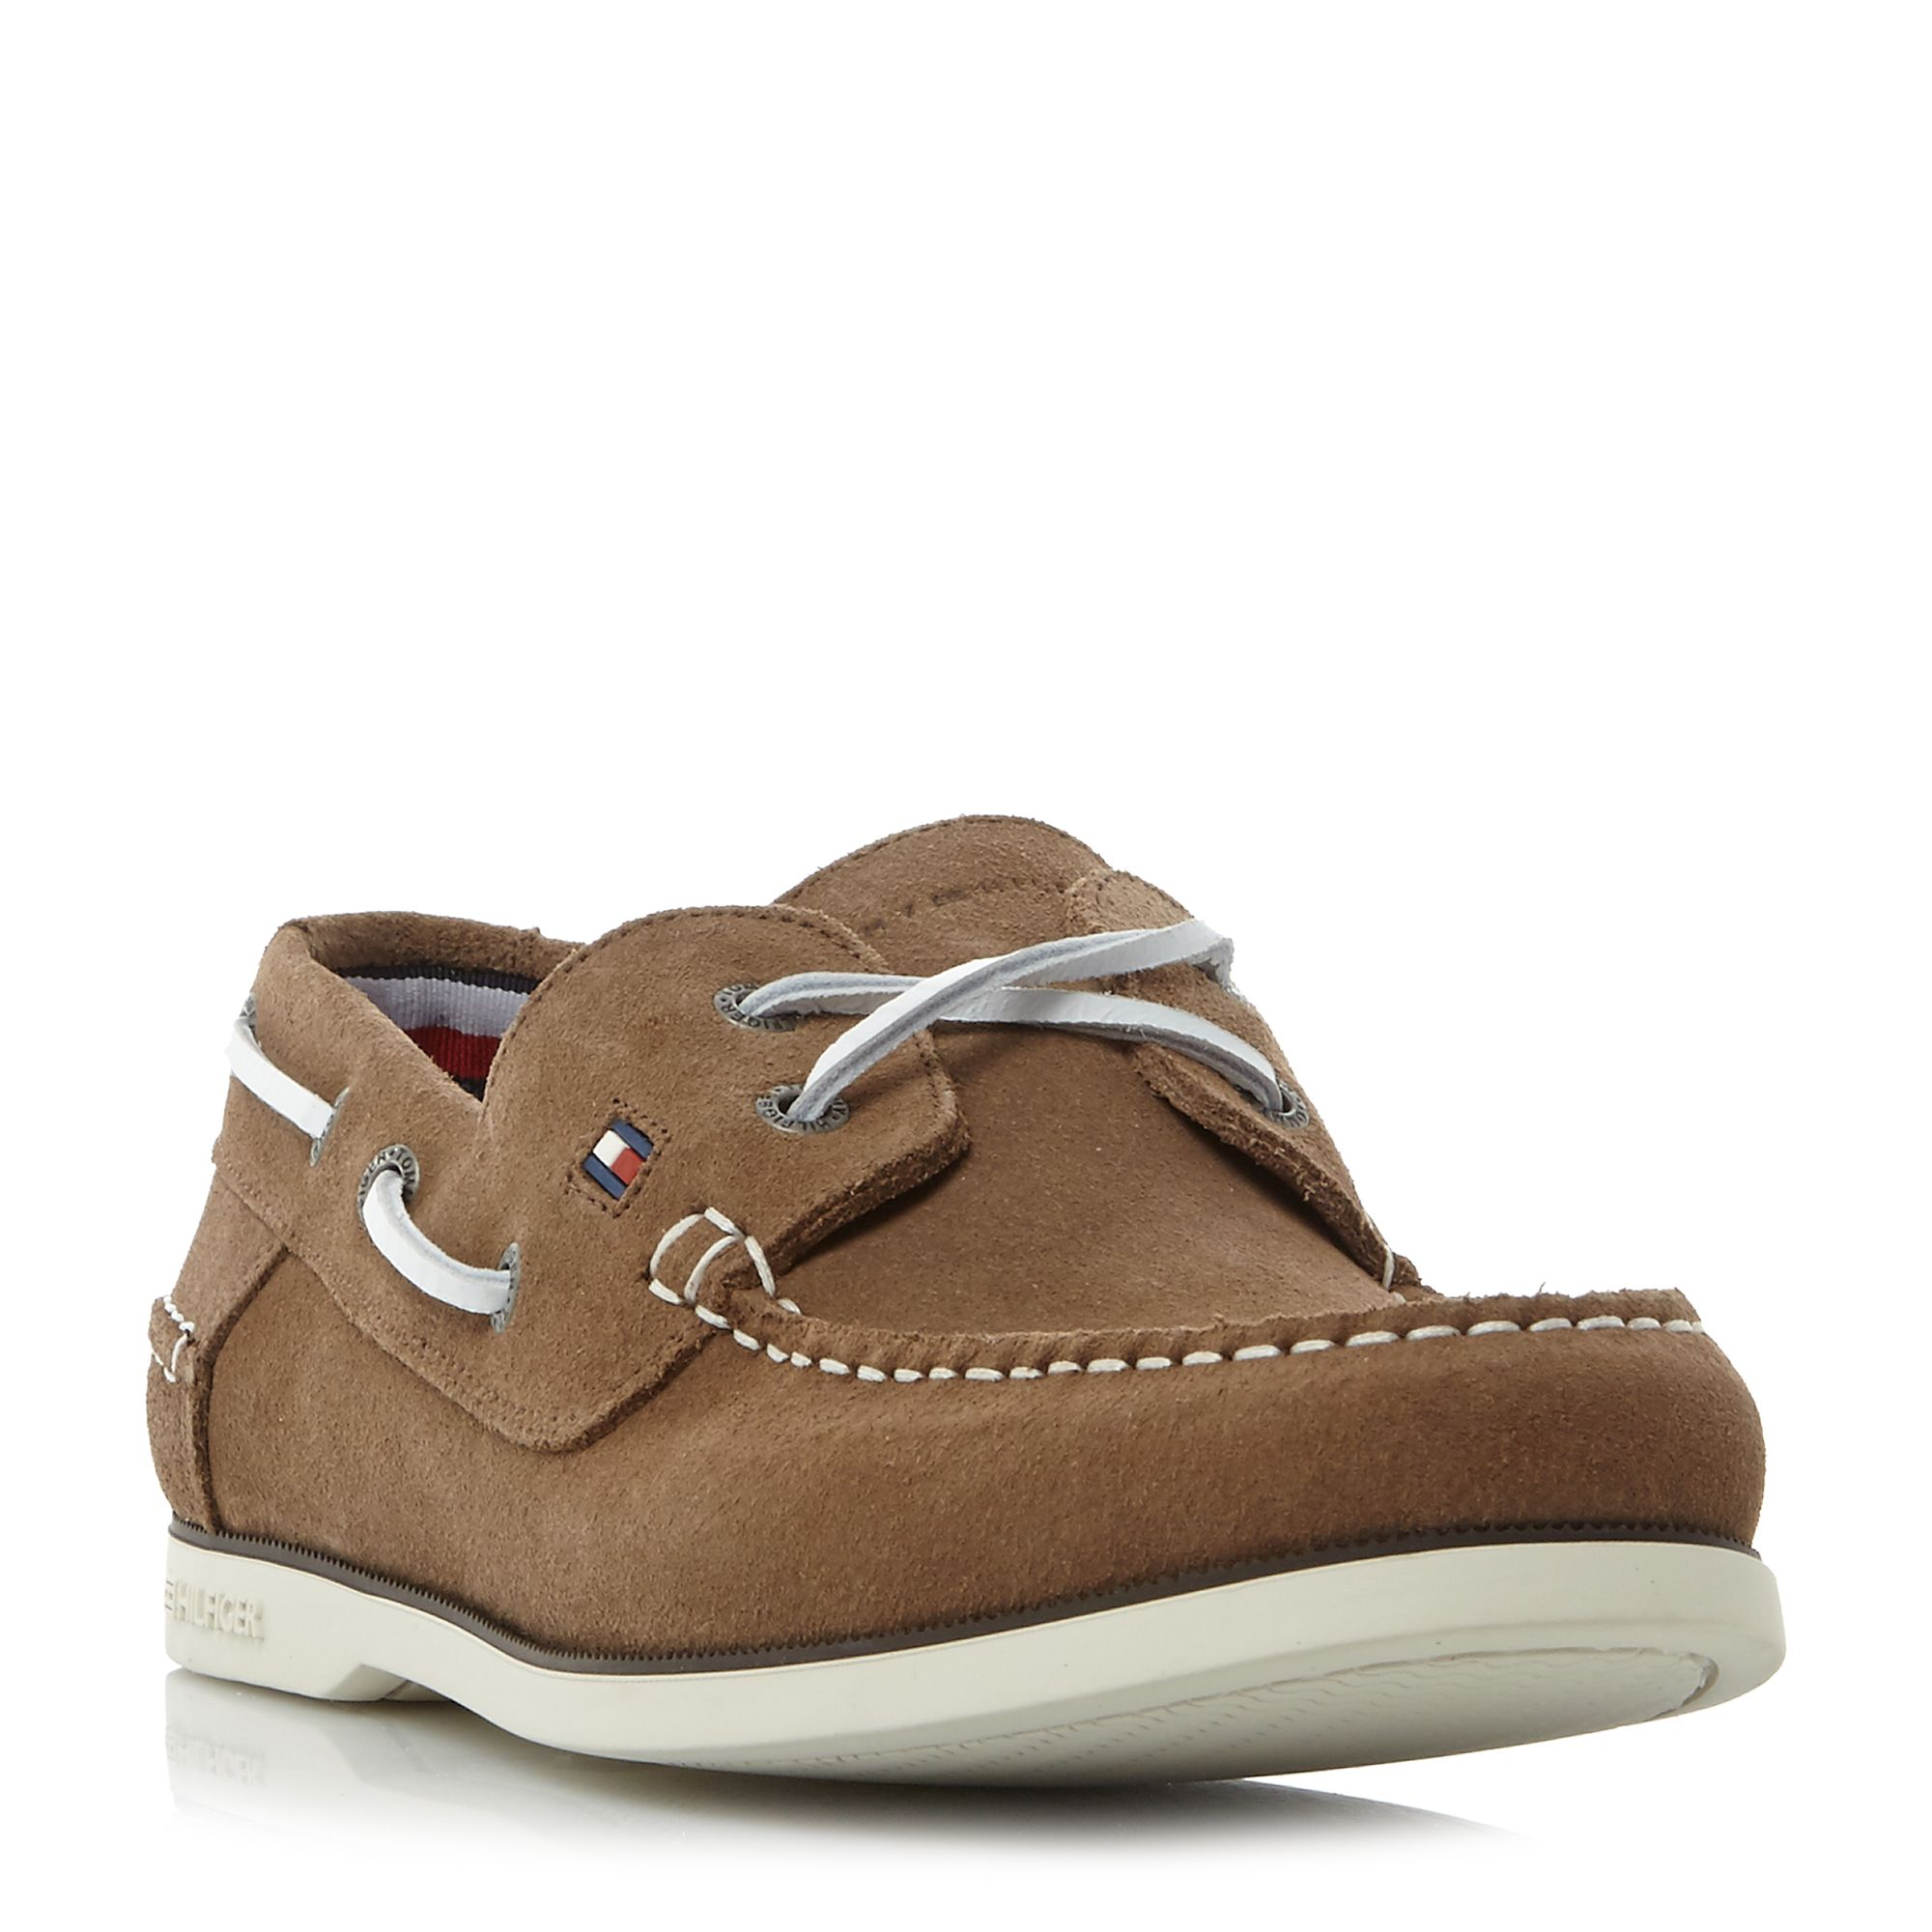 Tommy Hilfiger Knot 1b suede boat shoes Taupe